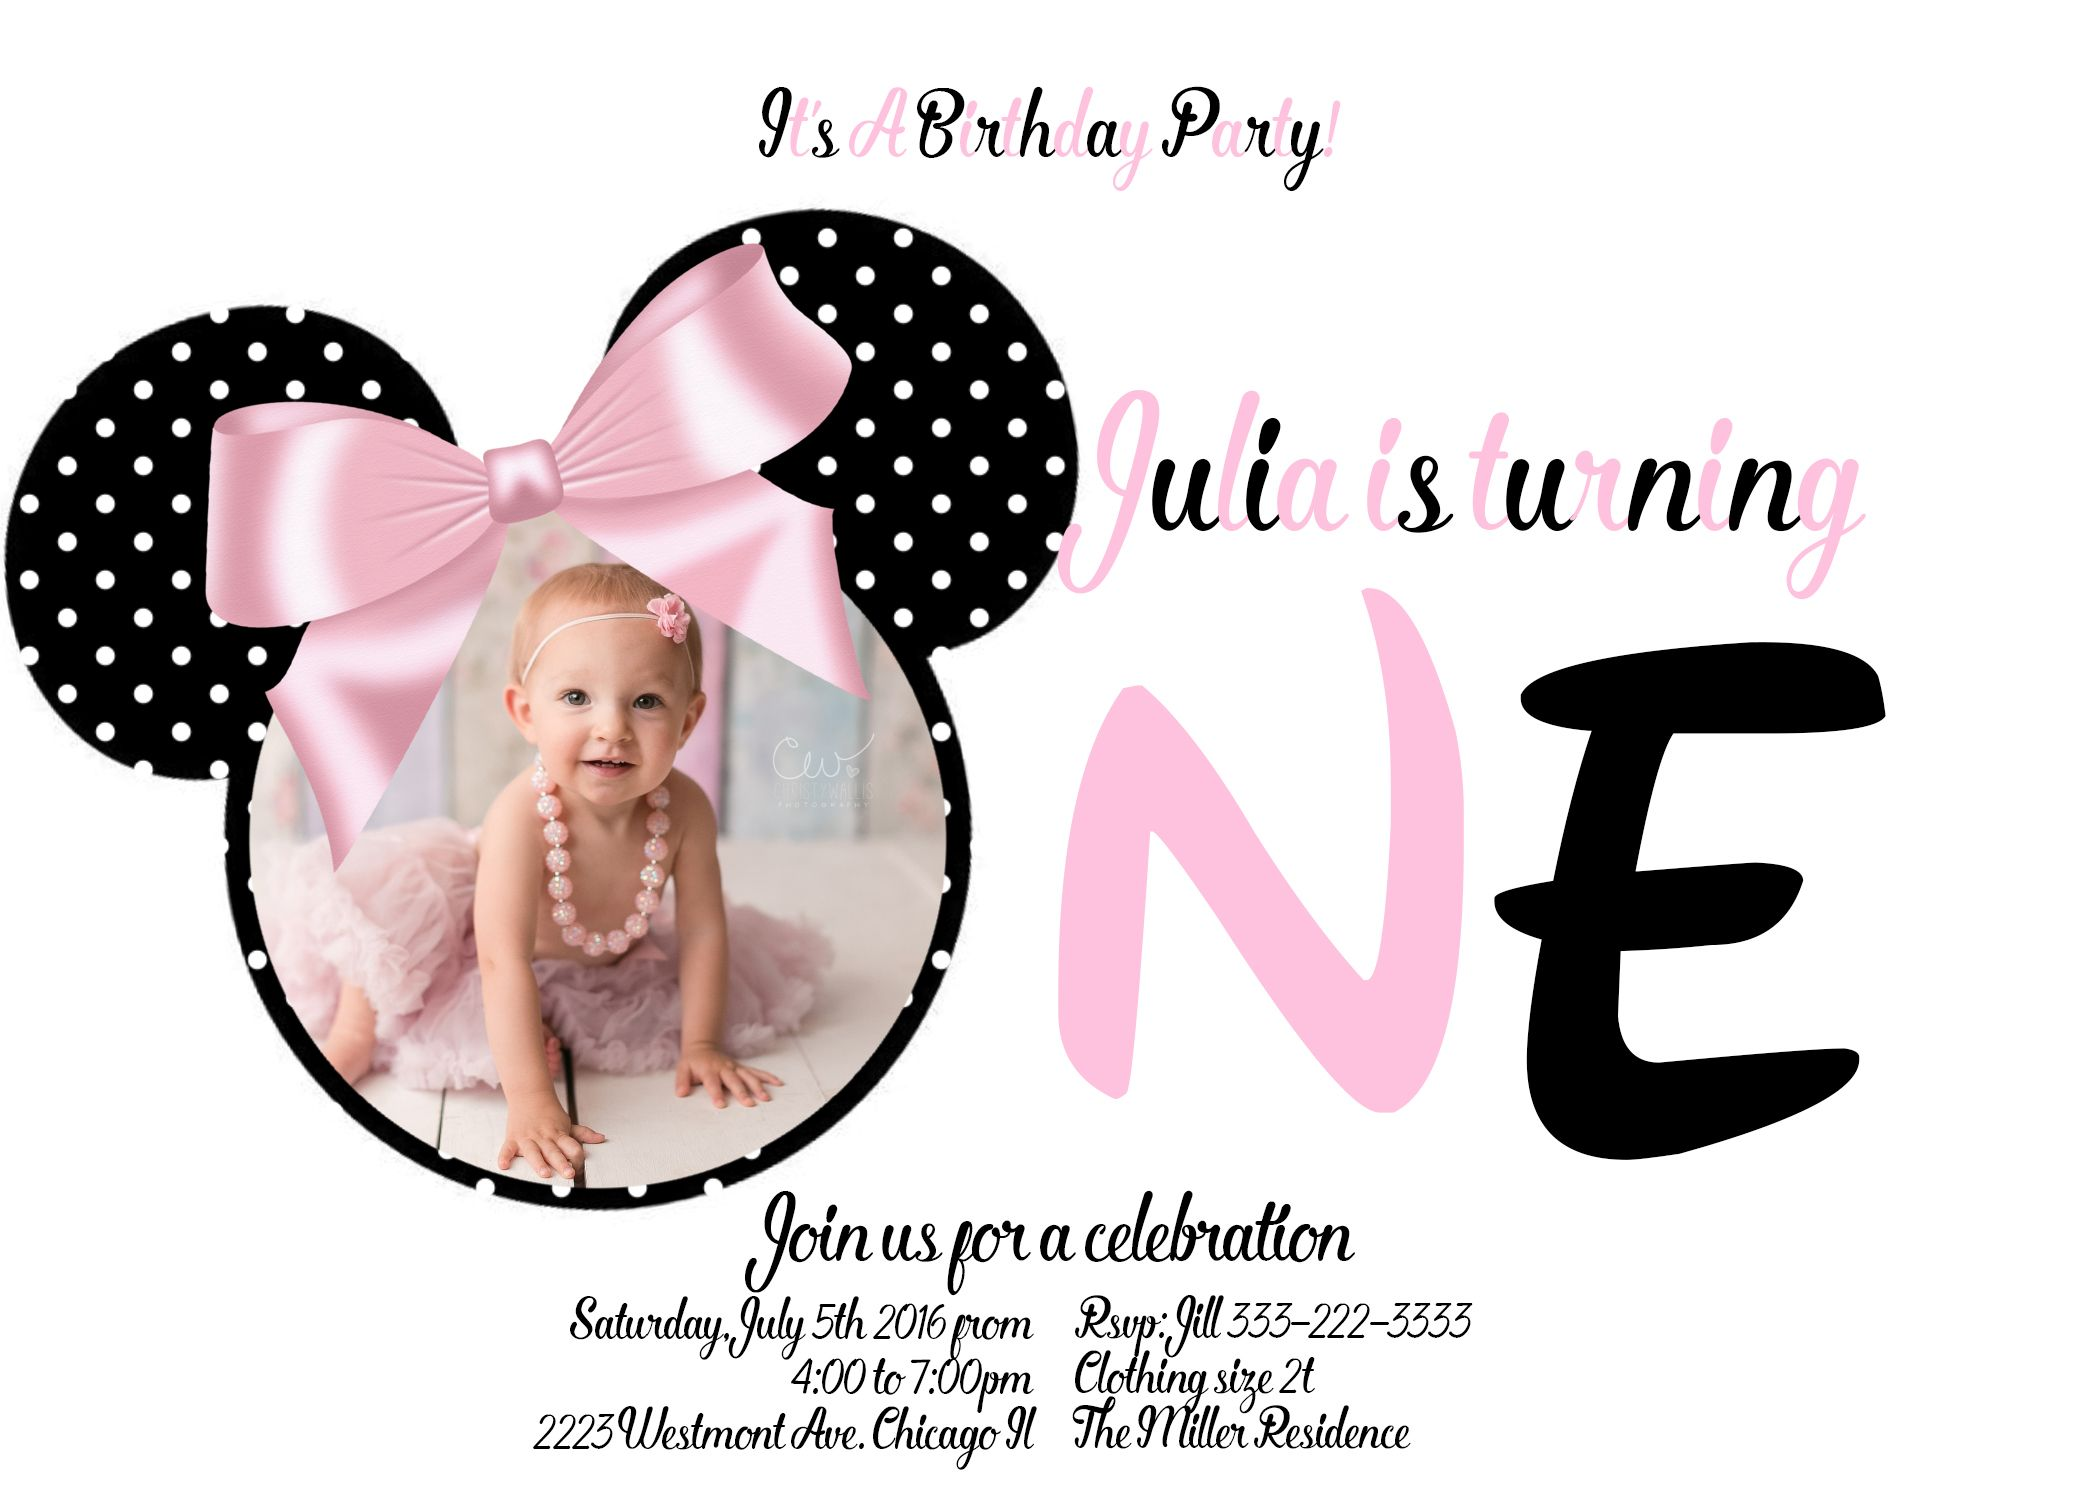 Minnie mouse first birthday invitation minnie mouse party diy minnie mouse first birthday invitation filmwisefo